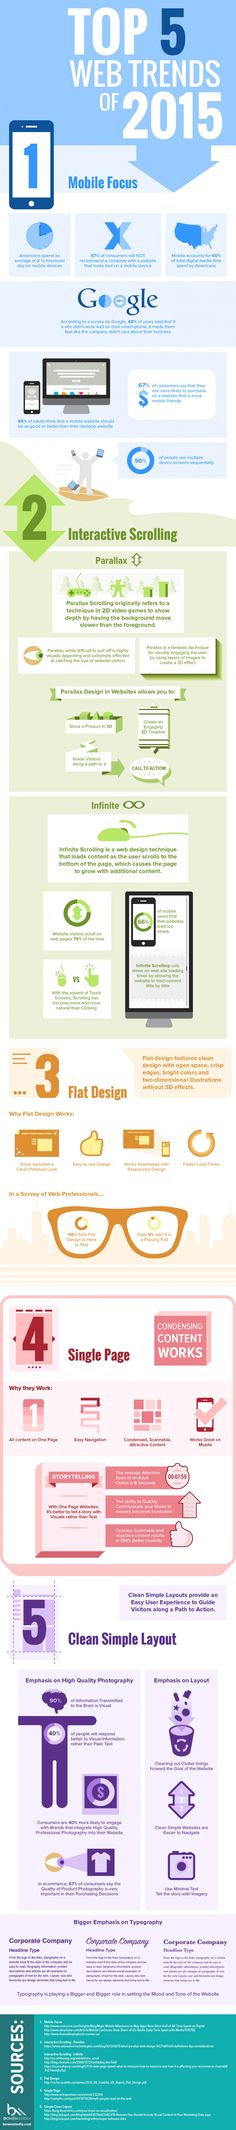 Top 5 web design trends for 2015 #infographic #webdesign #web #website…